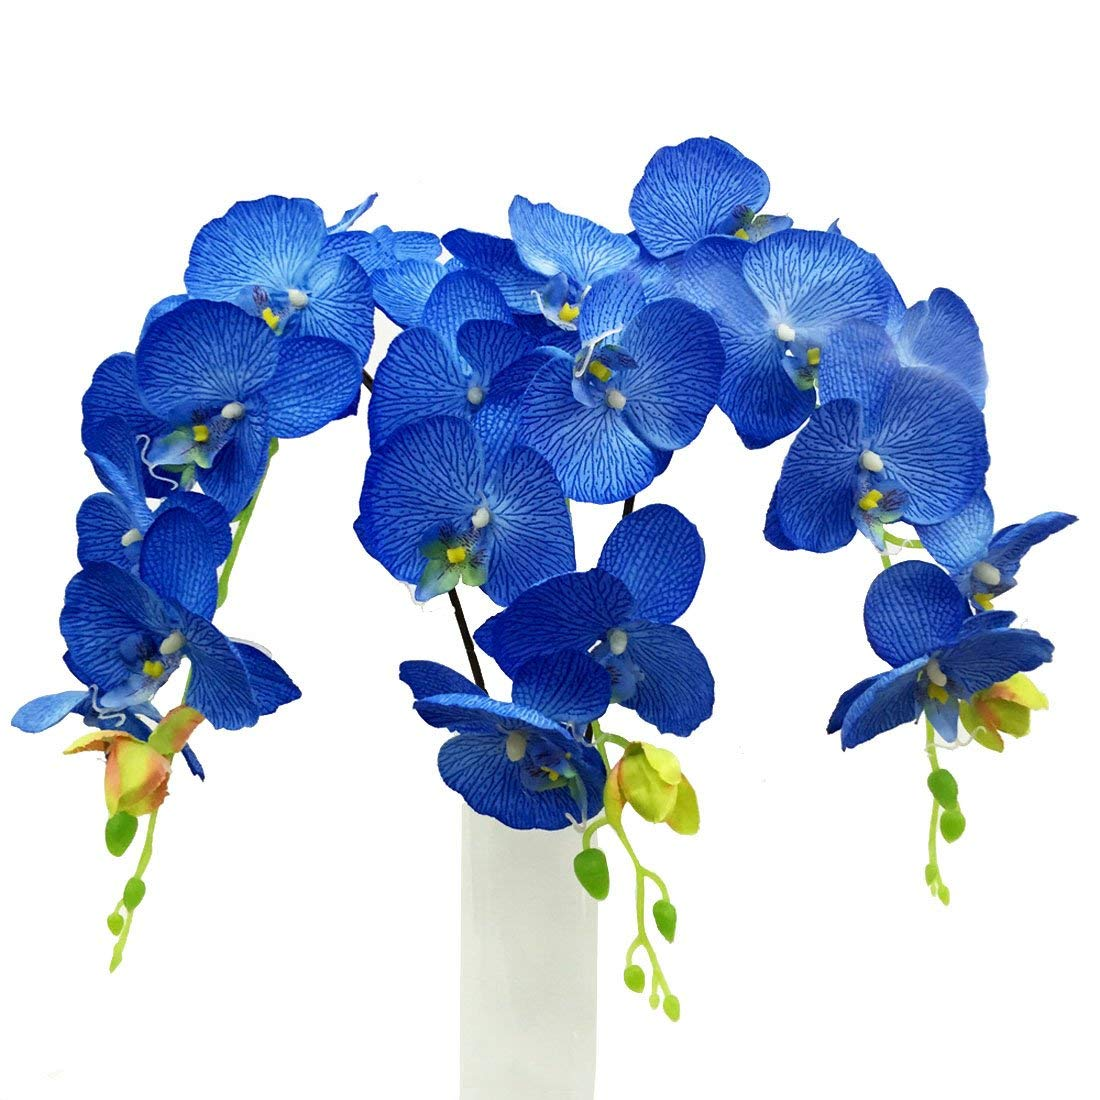 Cheap Blue Orchid Wedding Bouquets Find Blue Orchid Wedding Bouquets Deals On Line At Alibaba Com